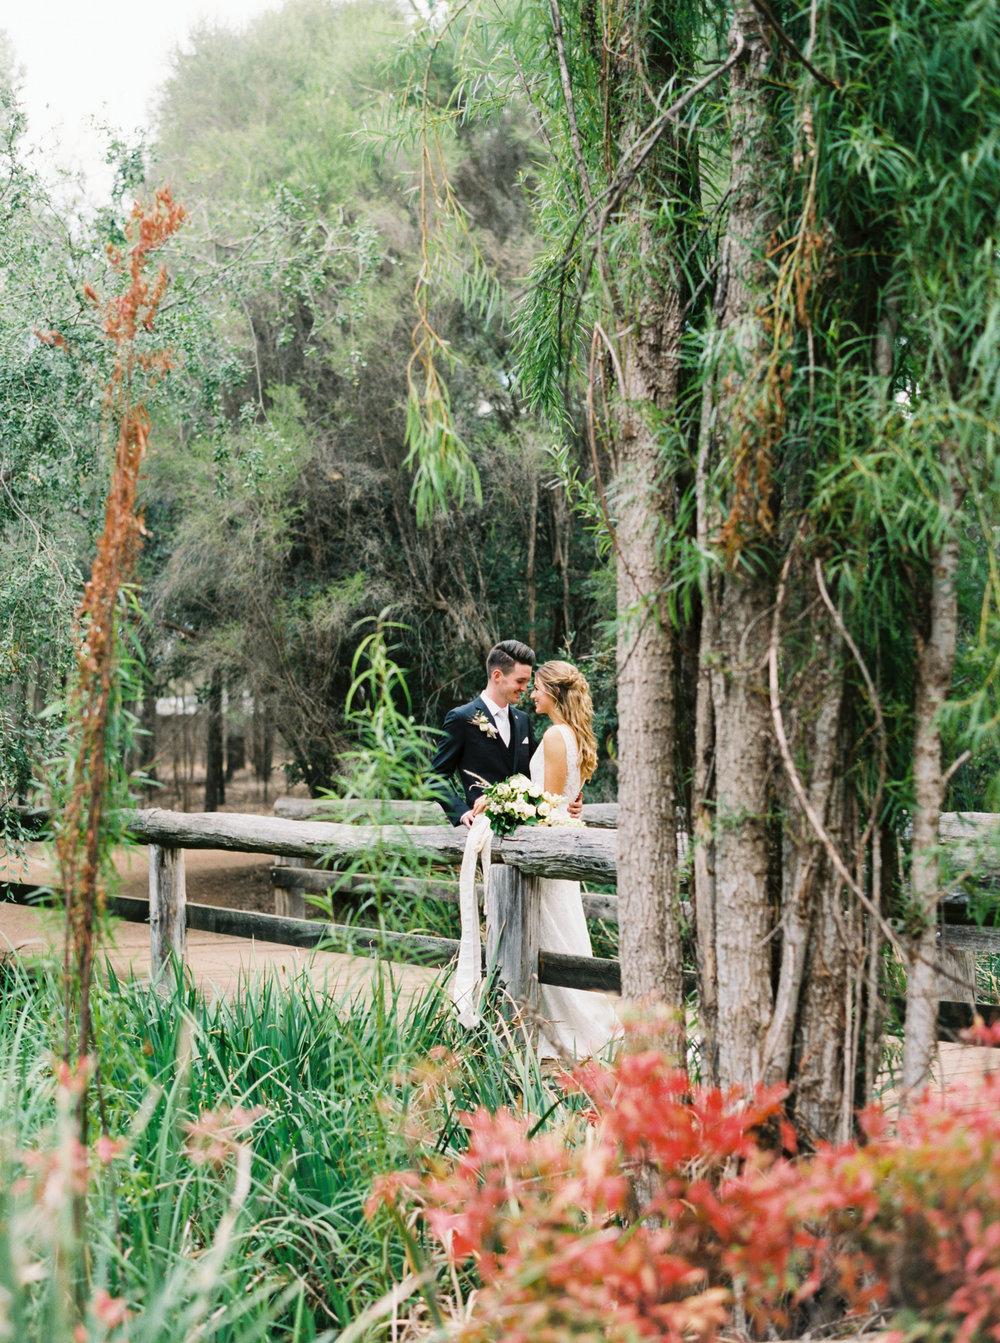 00044- Taronga Zoo Wedding Australia Fine Art Film Photographer Sheri McMahon.jpg